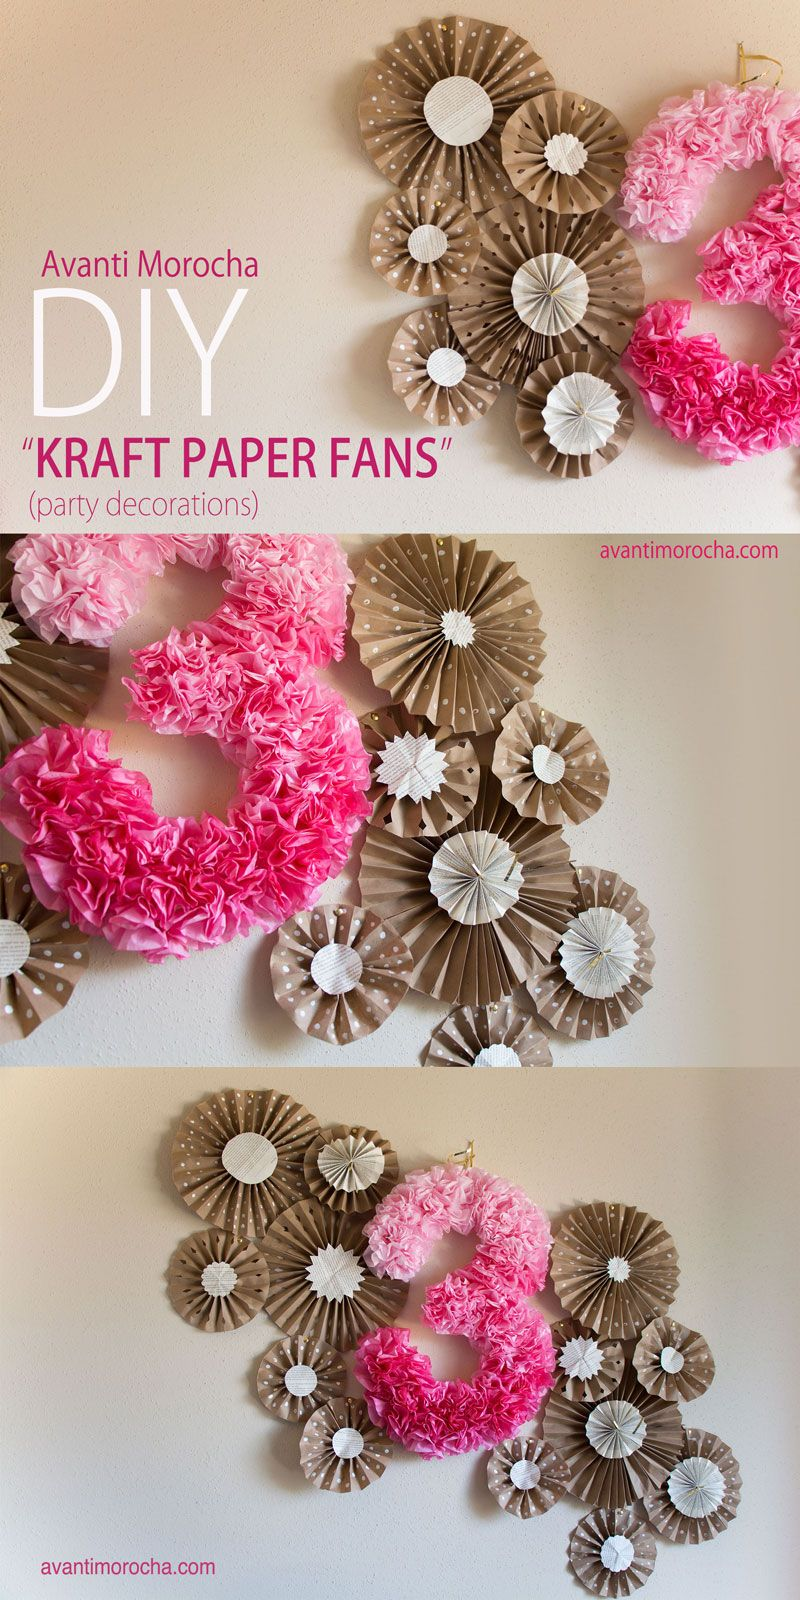 Diy paper fans rosettes beautiful paper backdrop do it beautiful paper backdrop do it yourself for less than 5 solutioingenieria Image collections